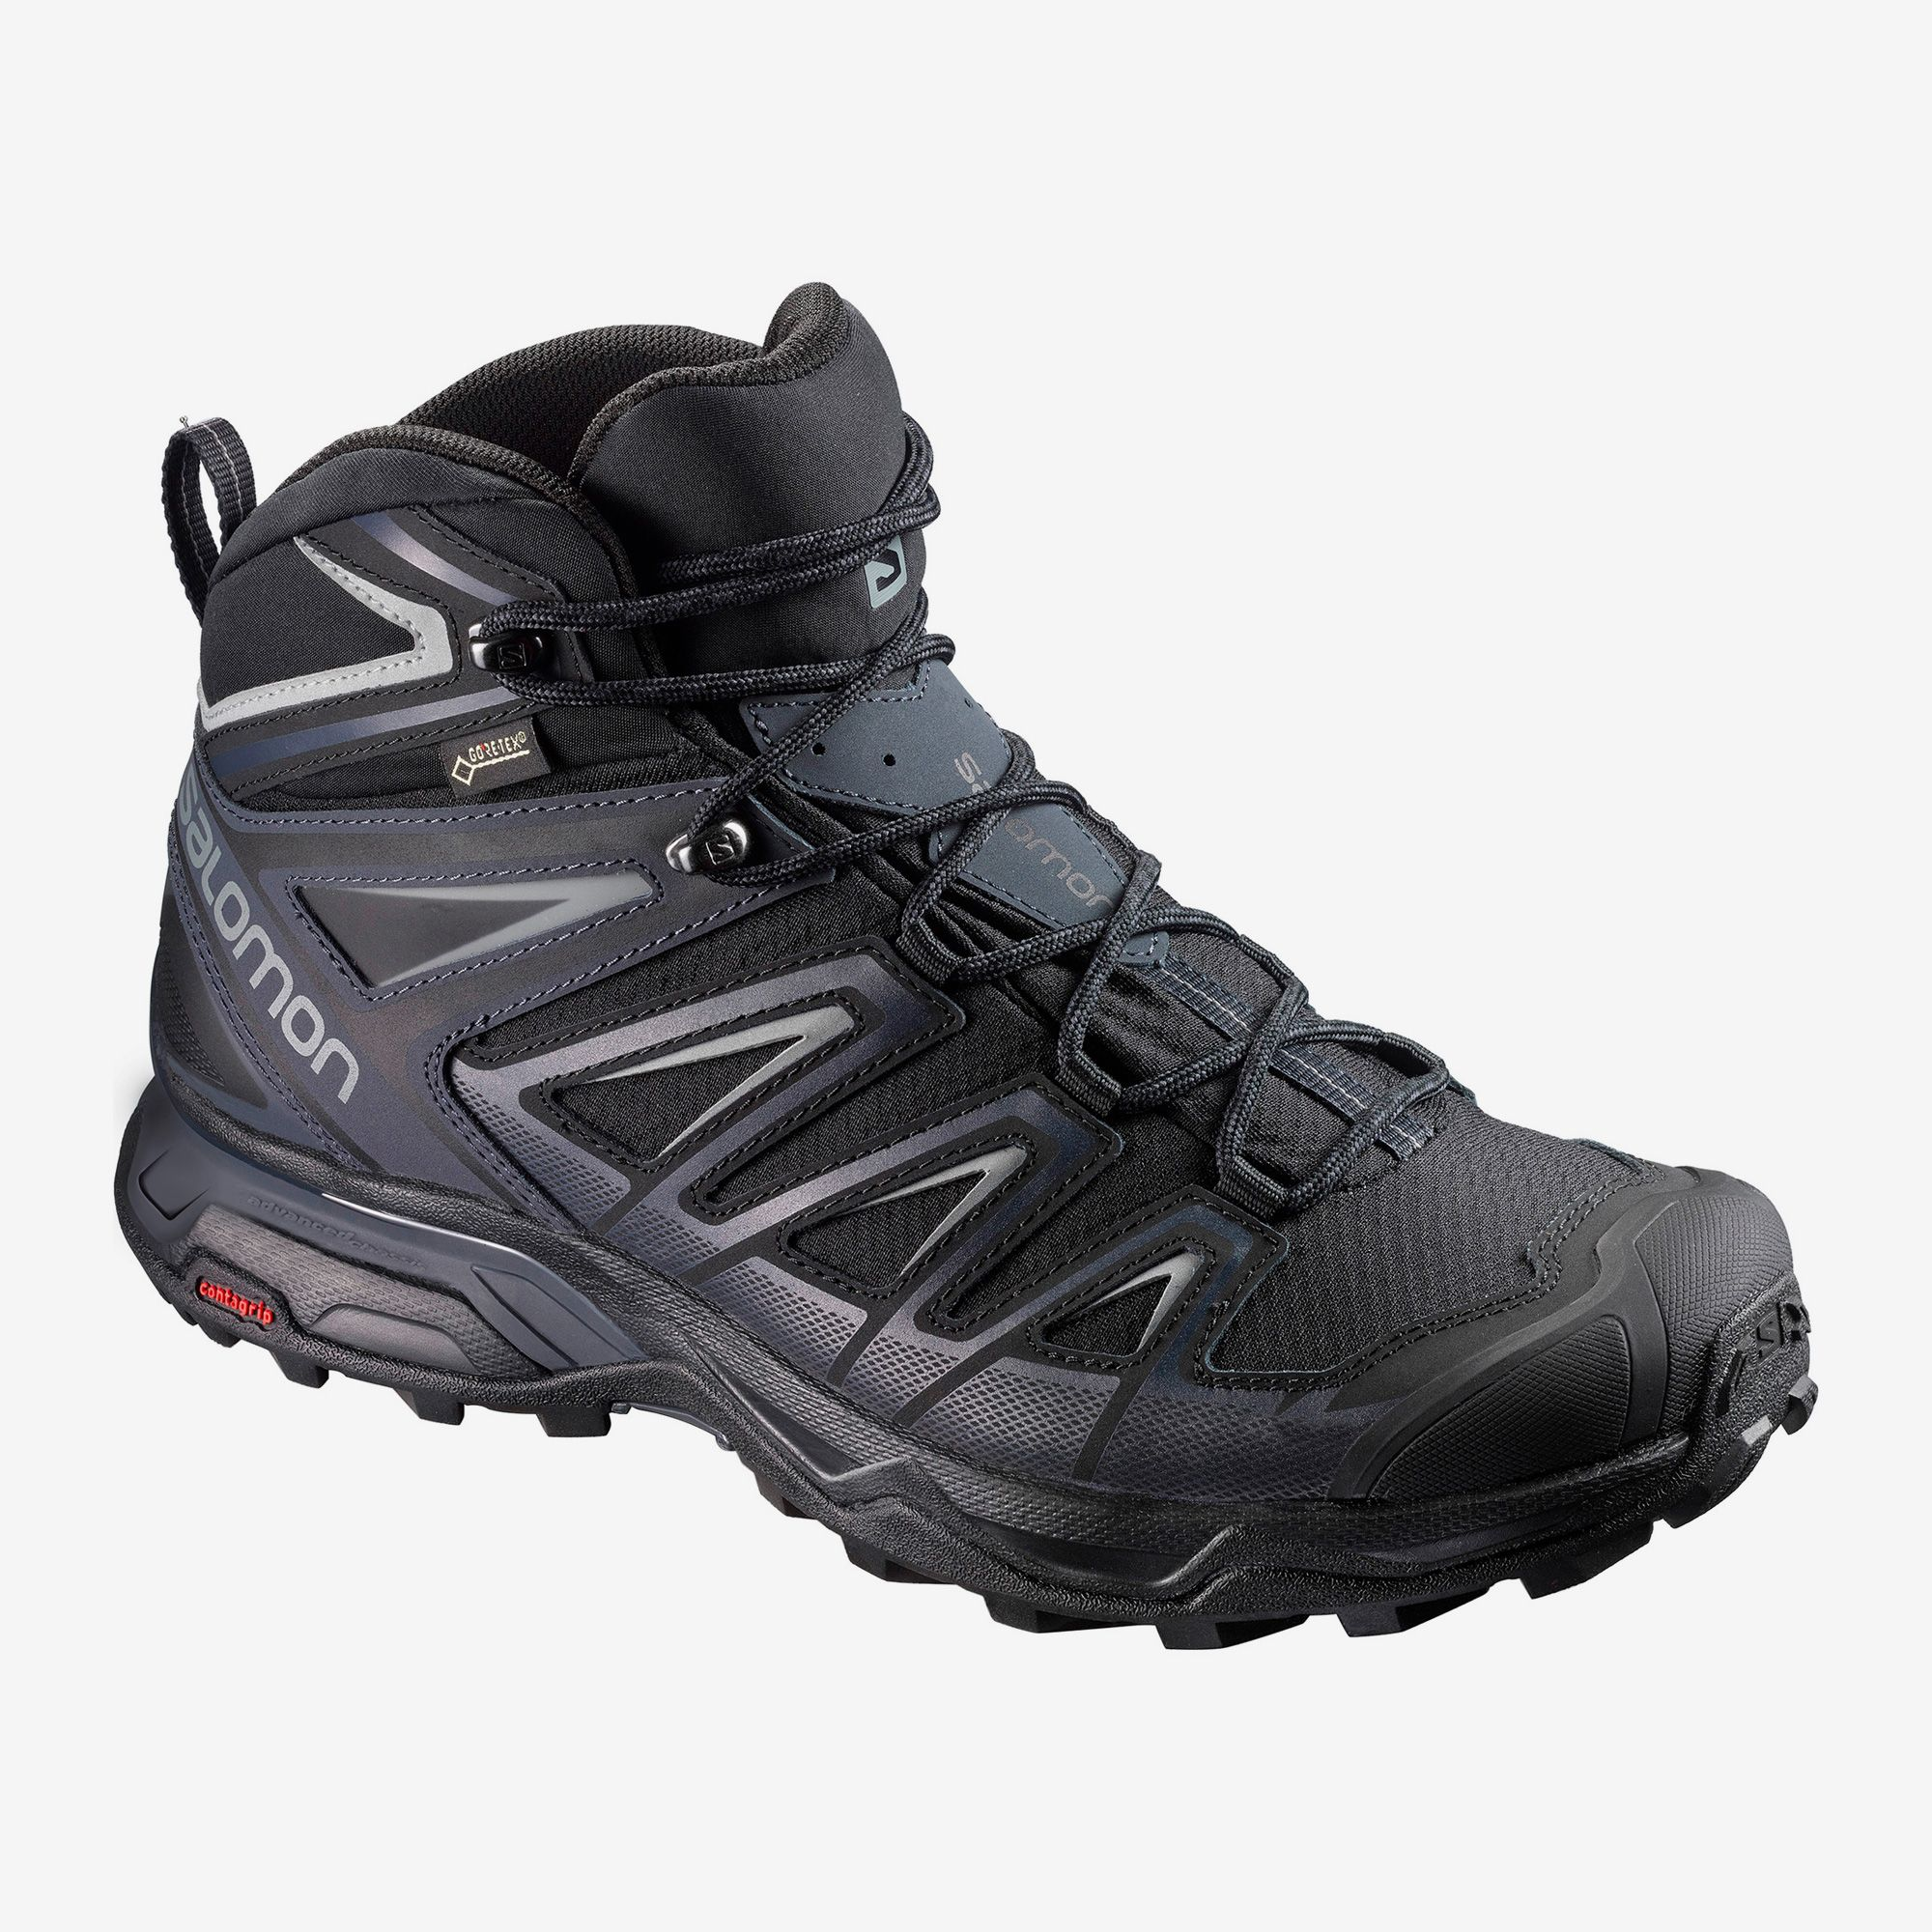 X Ultra 3 Mid Gtx Hiking Shoes Shoes Men In 2020 Hiking Boots Mens Hiking Boots Boots